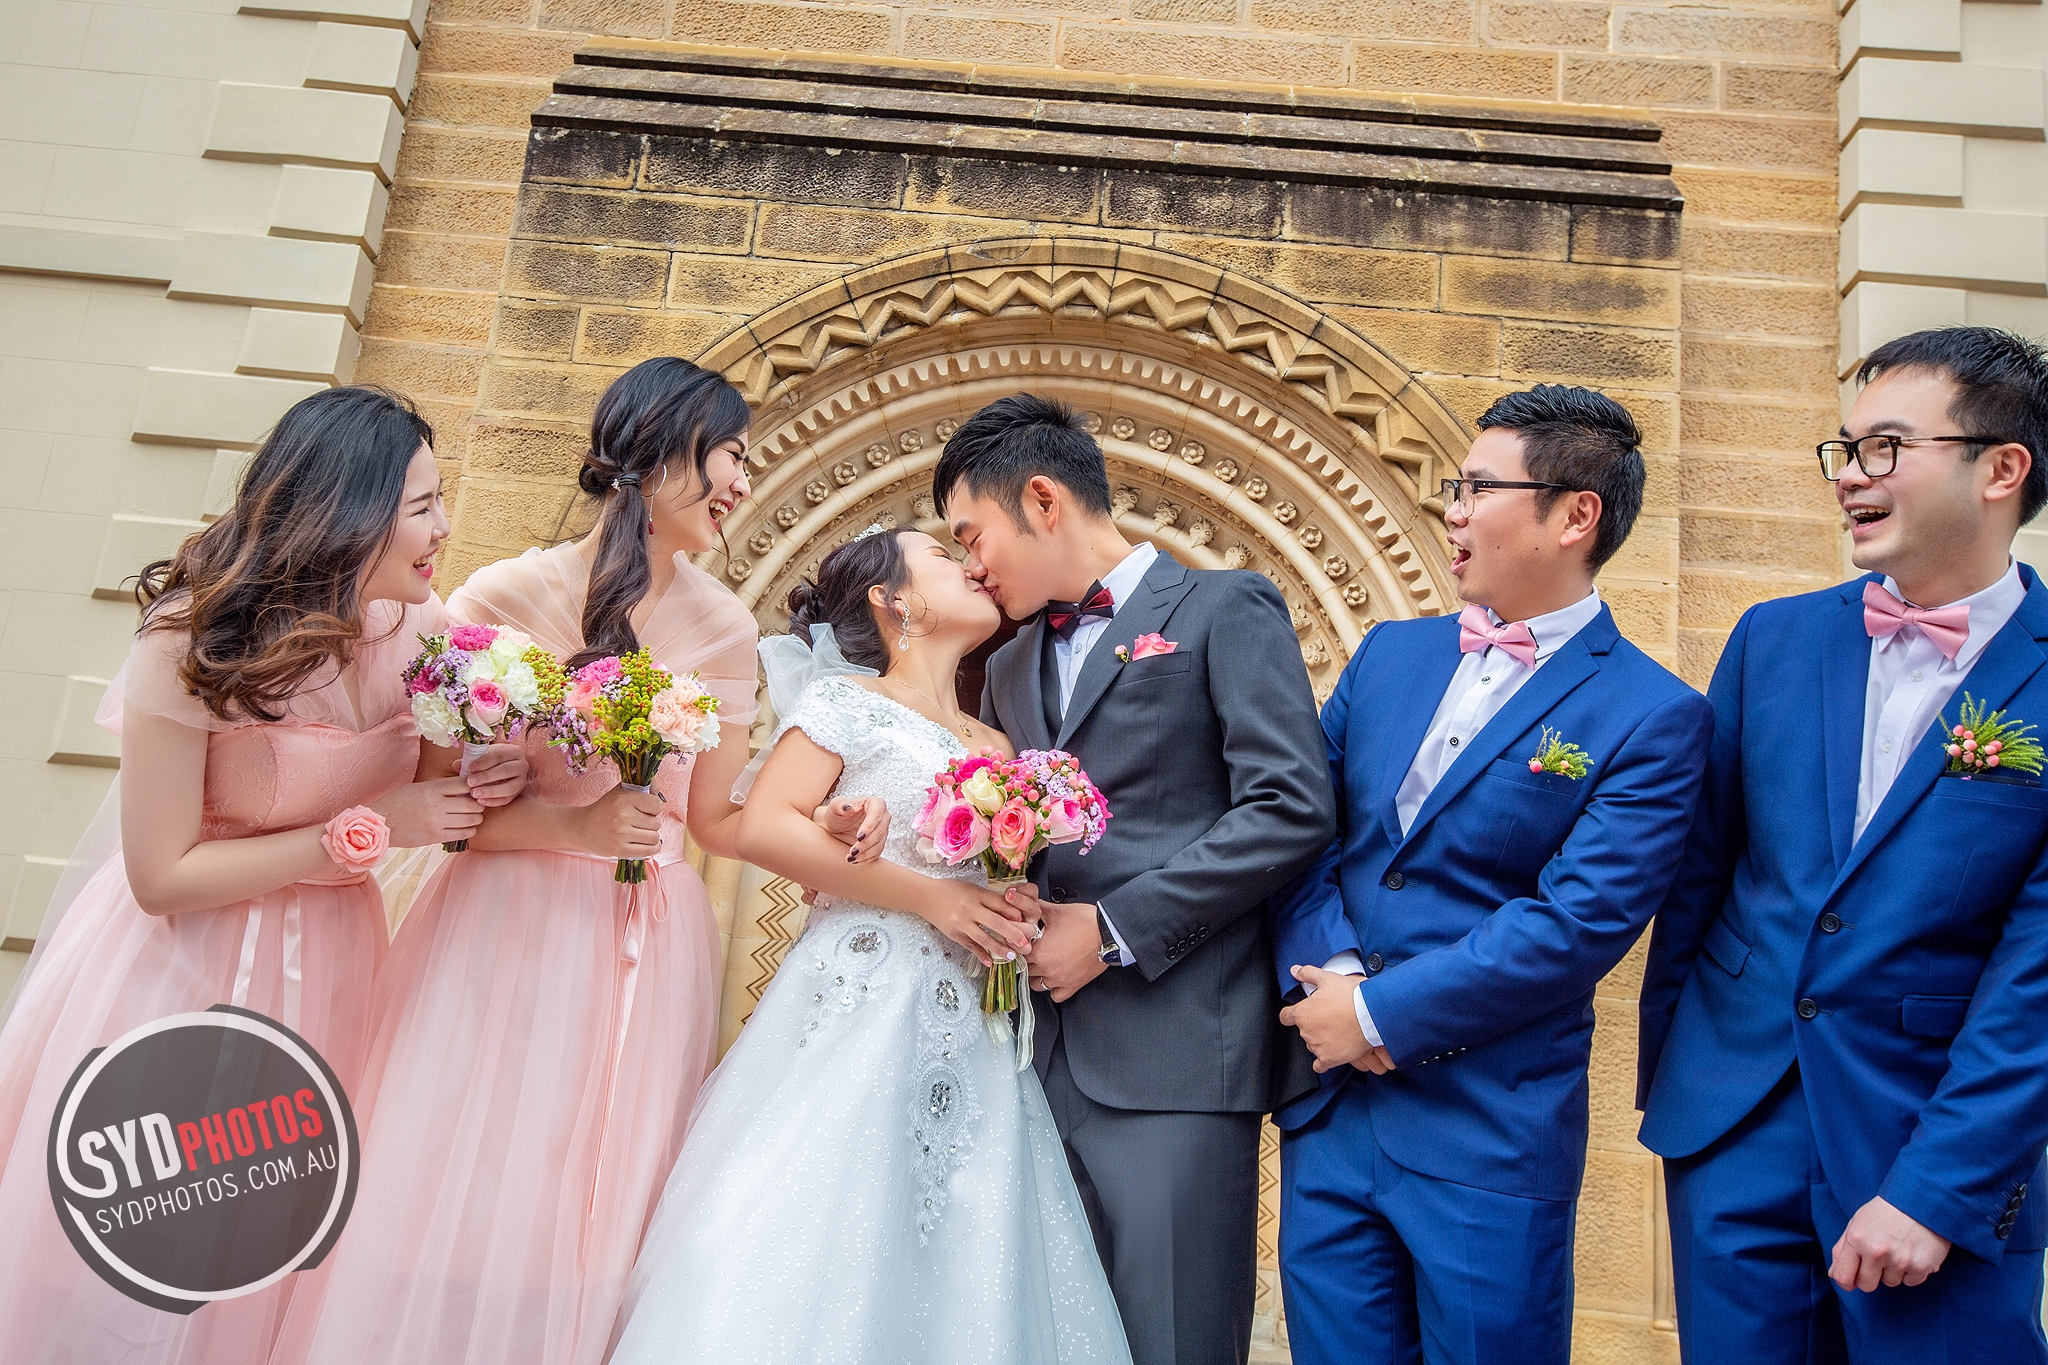 ID-100239-20180901-Ling-jpg (176).jpg, By Photographer Sydphotos.wedding, Created on 23 Jan 2019, SYDPHOTOS Photography all rights reserved.